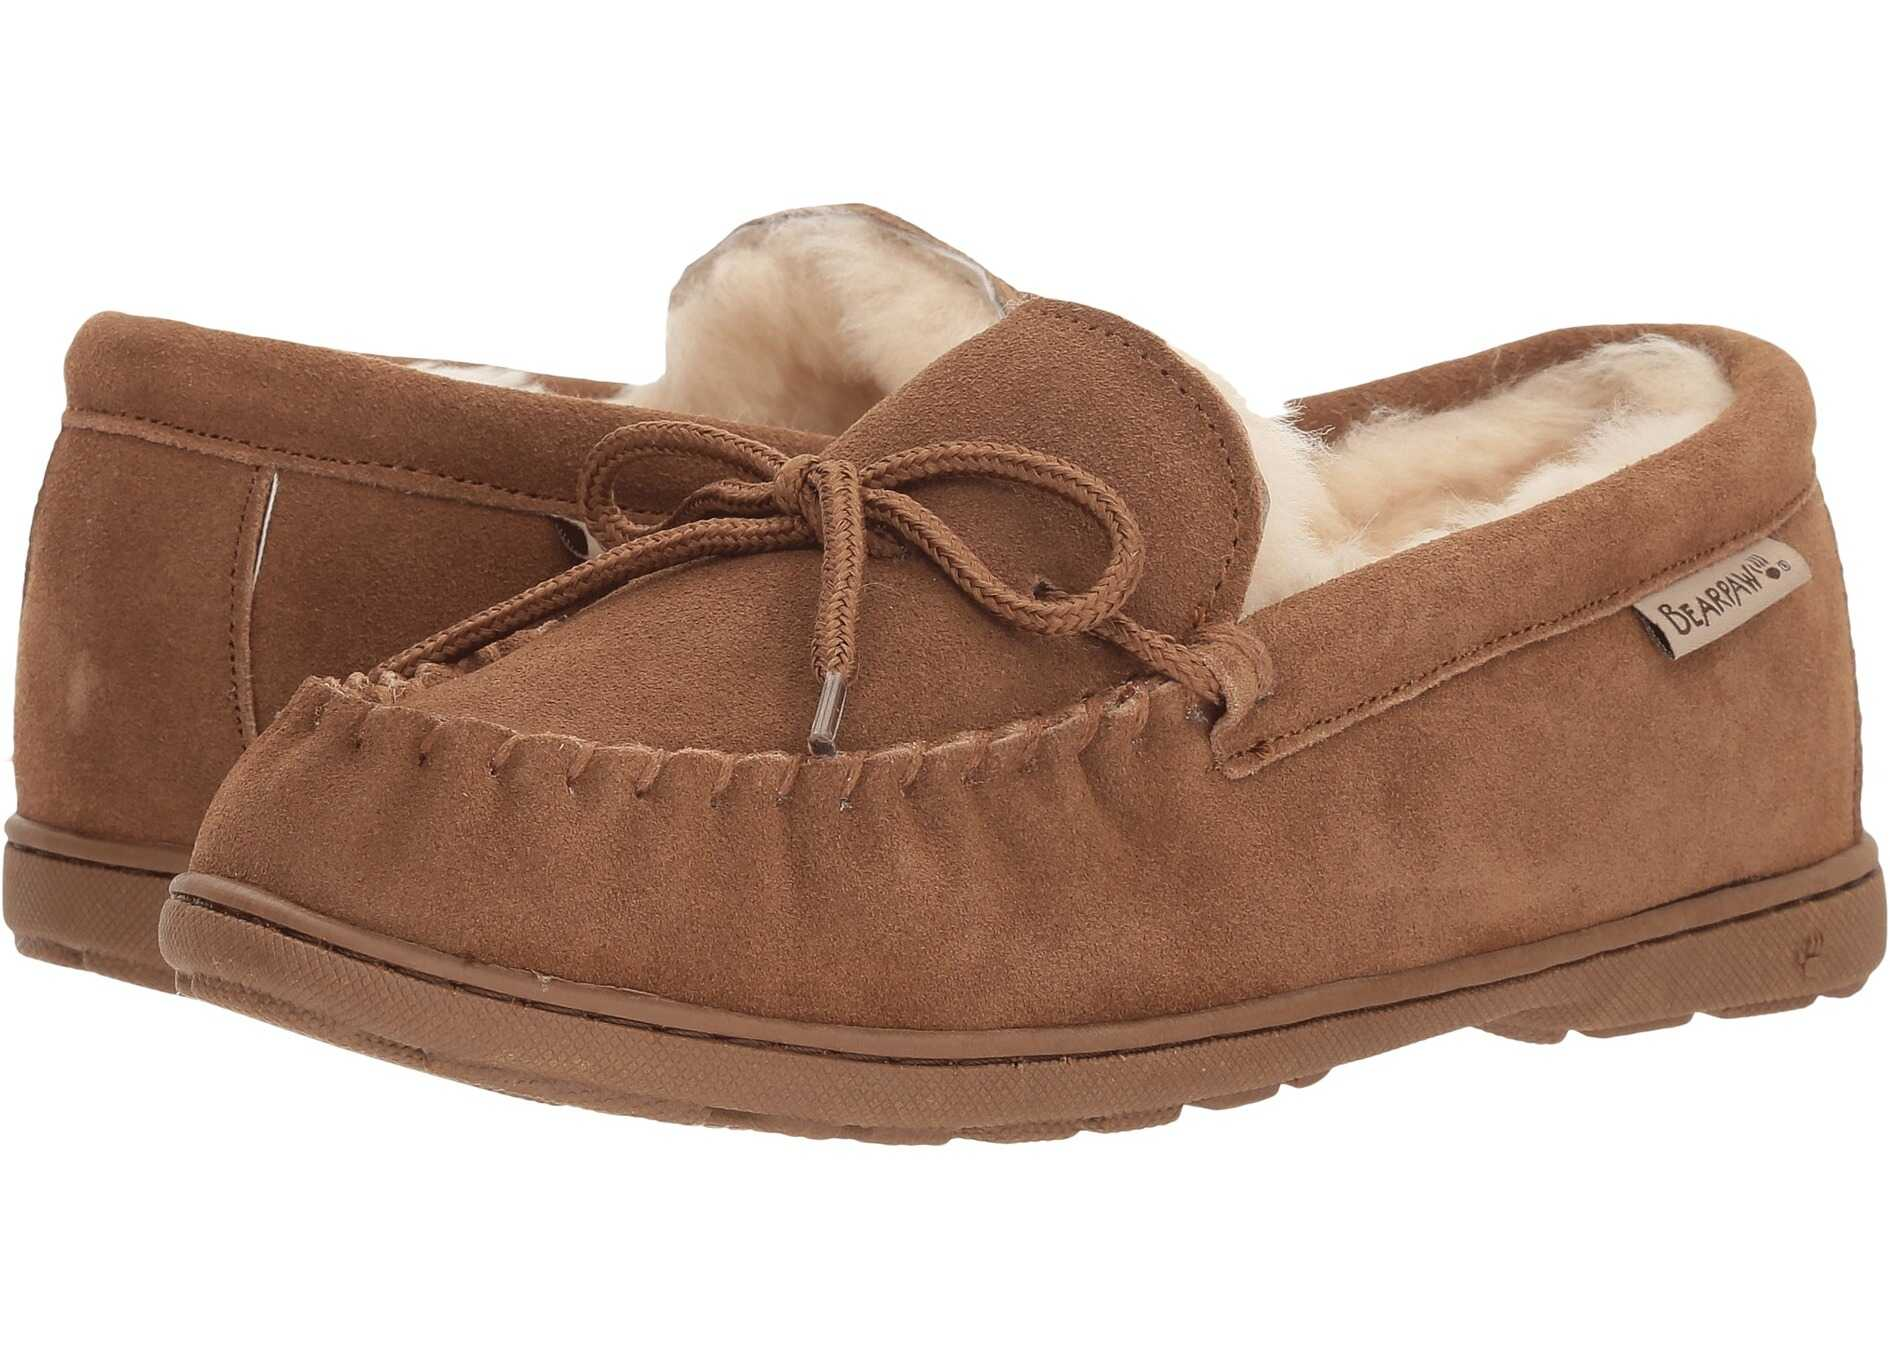 Bearpaw Mindy Hickory Suede